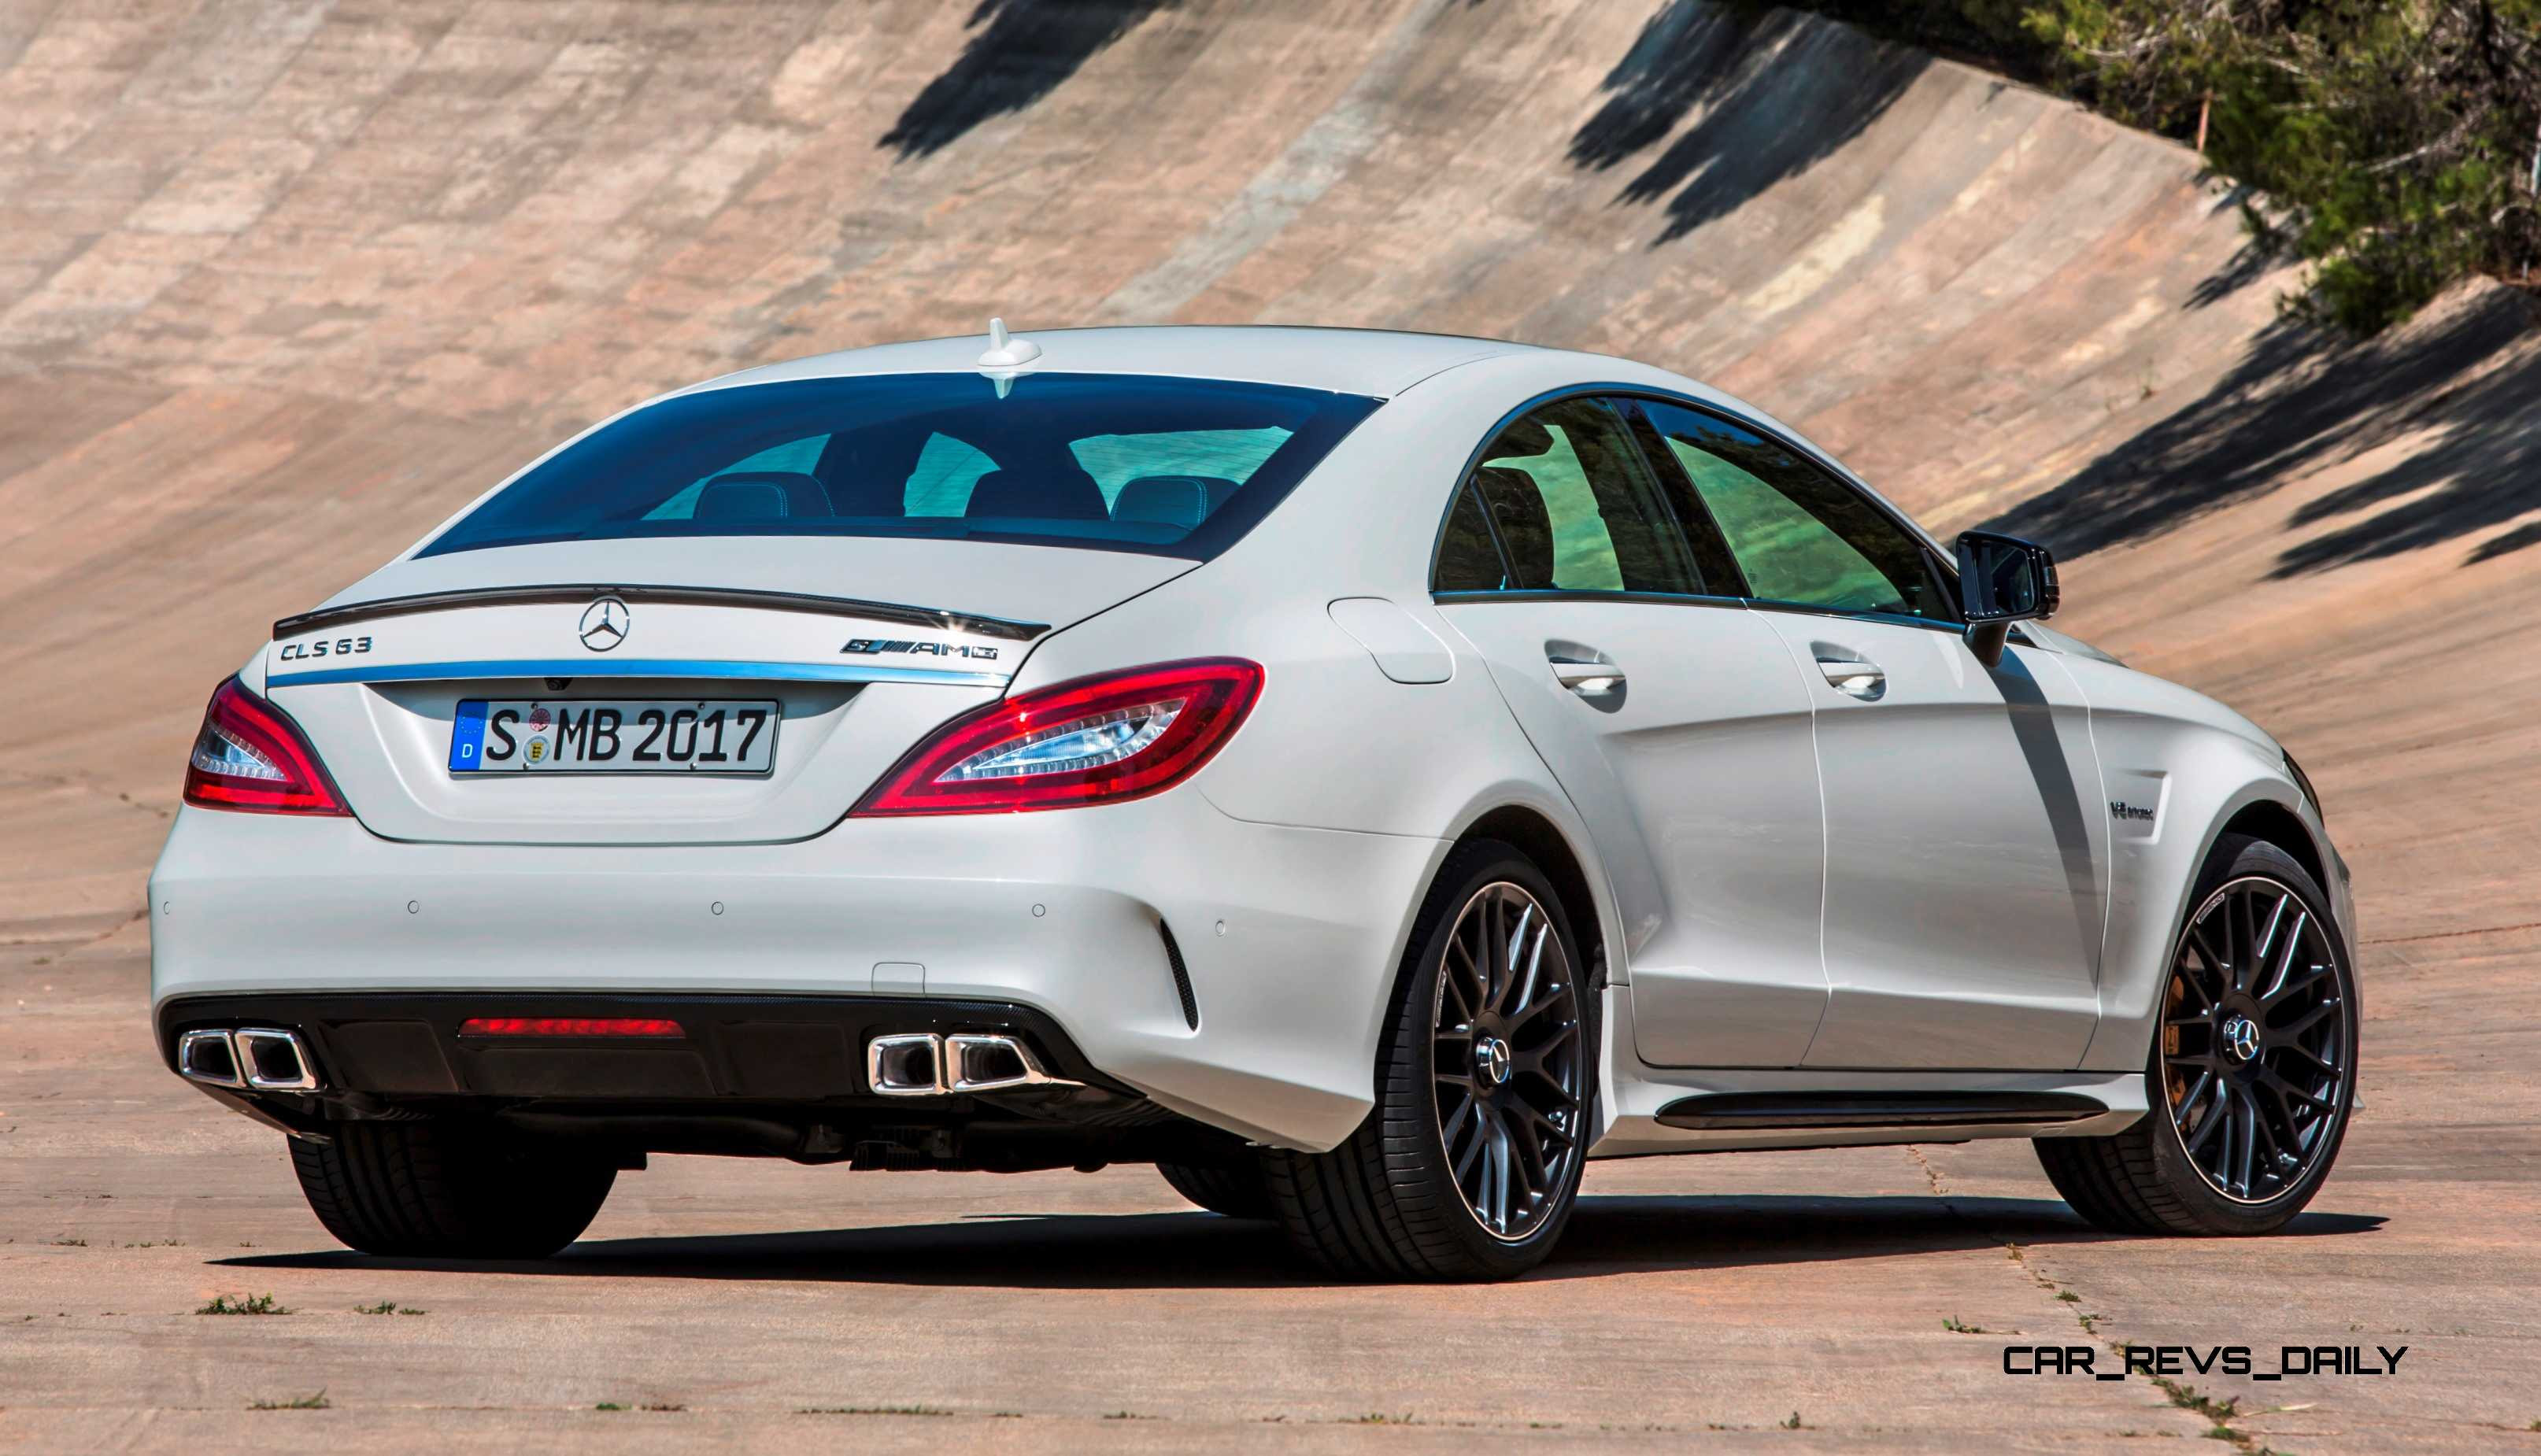 2015 Mercedes-Benz CLS550 and CLS63 AMG